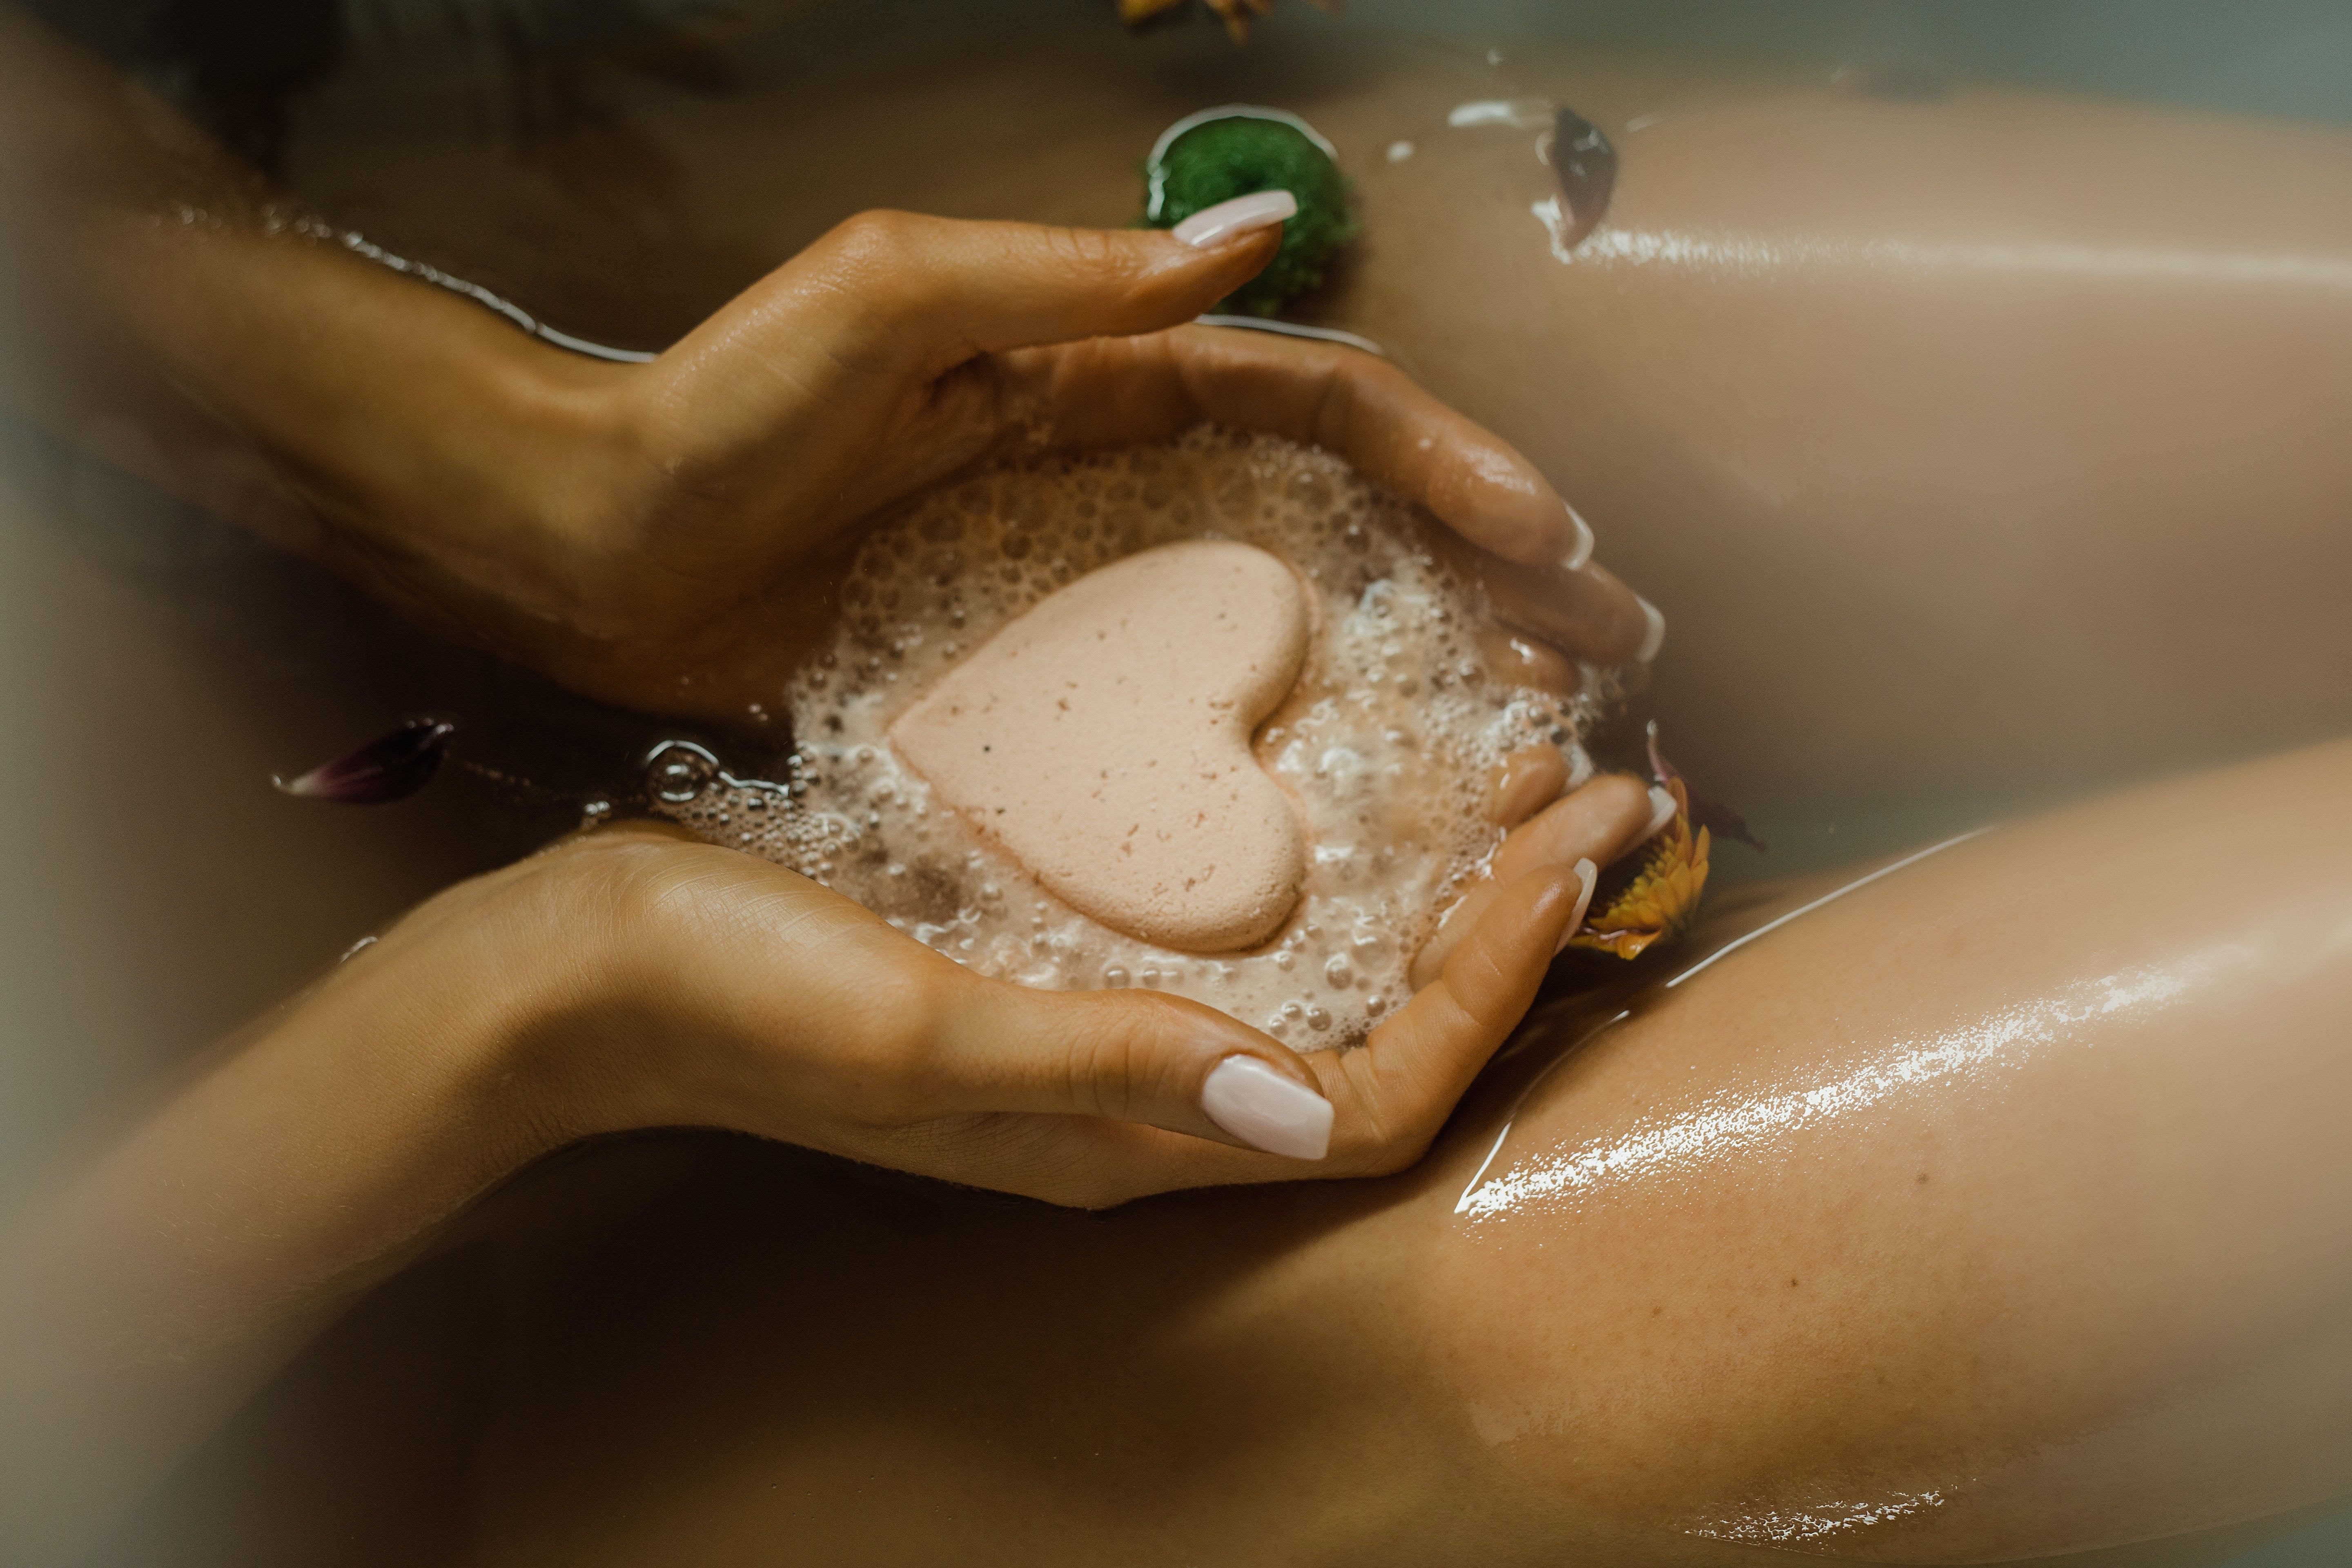 Add More Than Just Bubbles To The Tub With The Best CBD Bath Bombs12 How to Get the Most Out Of Your Stash with the Best Weed Grinders